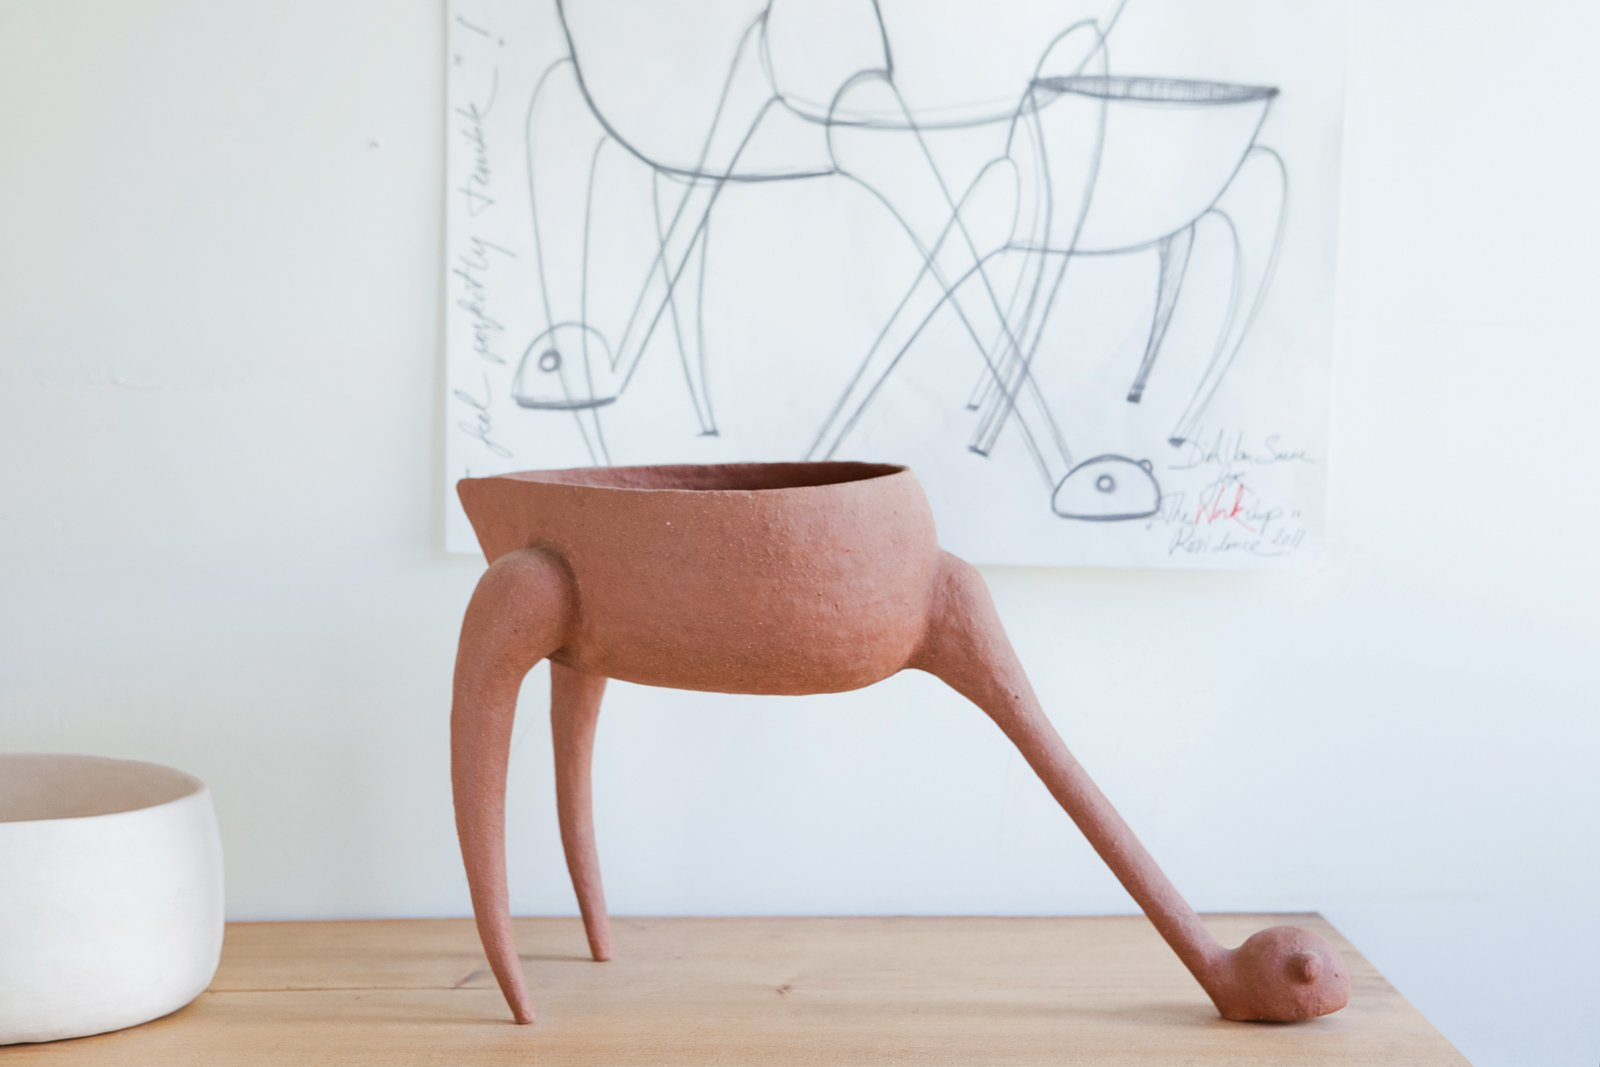 While a resident, Van Saene created animistic bisque pottery inspired by African masks, including a one-off hand-built vessel titled I Feel Perfectly Terrible. Upcoming artists include Johanna Grawunder, a former partner at architect Ettore Sottsass's studio in Milan, who will, starting in February, create lamps from found objects.  Photo 4 of 7 in Maker's Mark